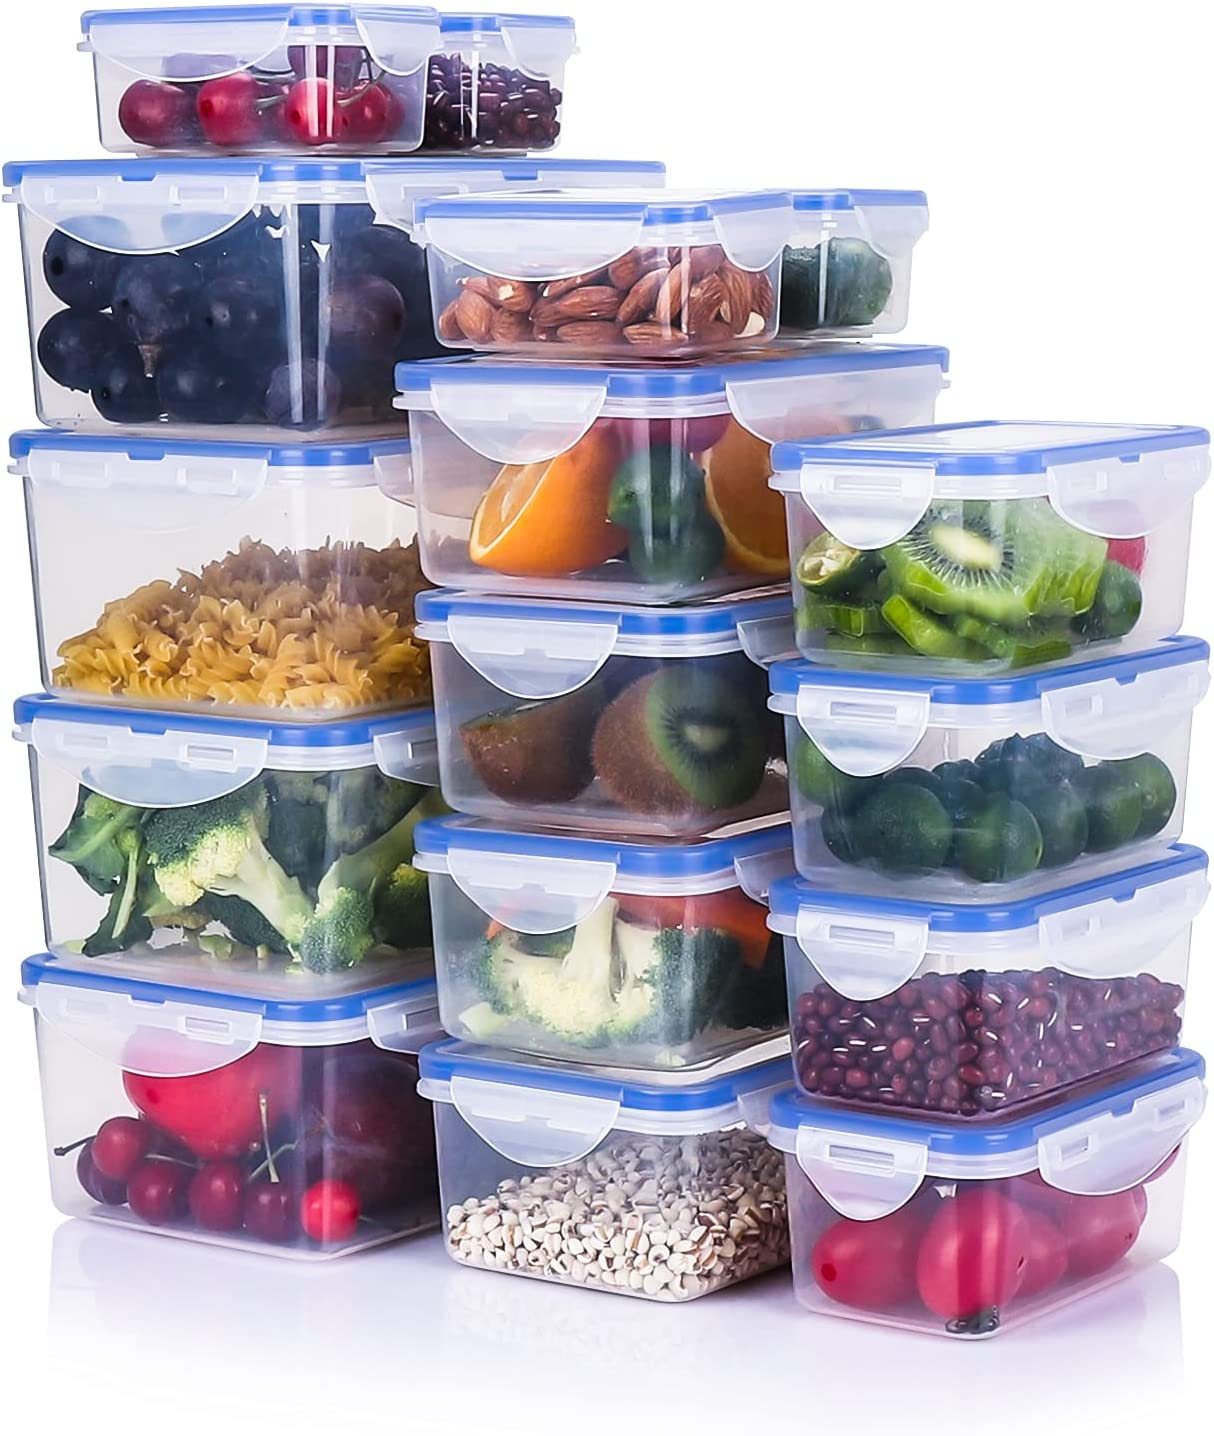 Tauno 16 Pack Food Storage Containers Set, Plastic Food Containers with Lids Airtight, Clear Meal Prep Containers Dishwasher Safe, 73 Cup / 18 Quart Total